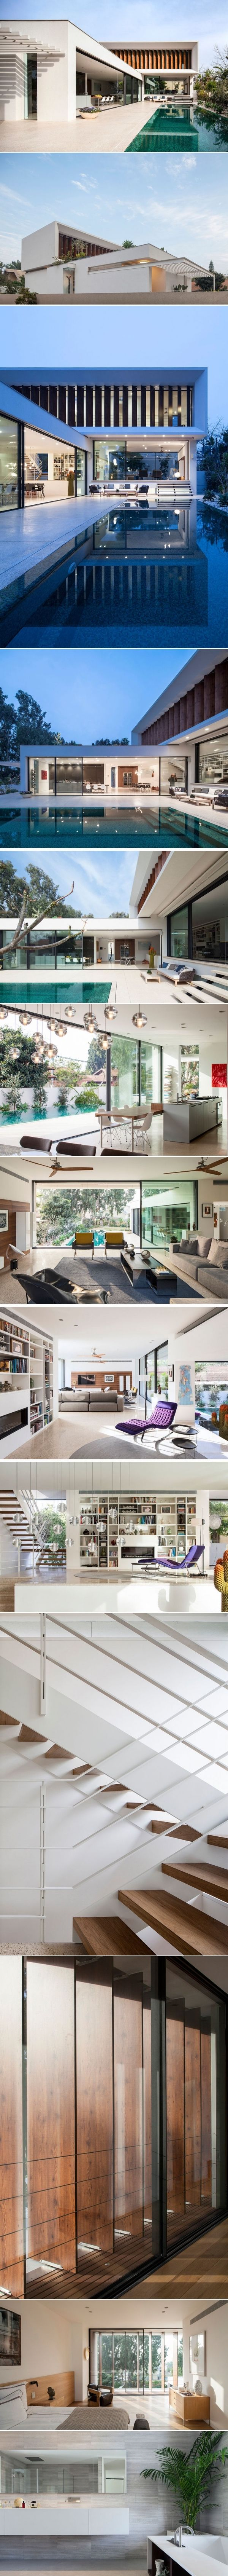 A Modern Mediterranean Villa By Paz Gersh Architects | CONTEMPORIST